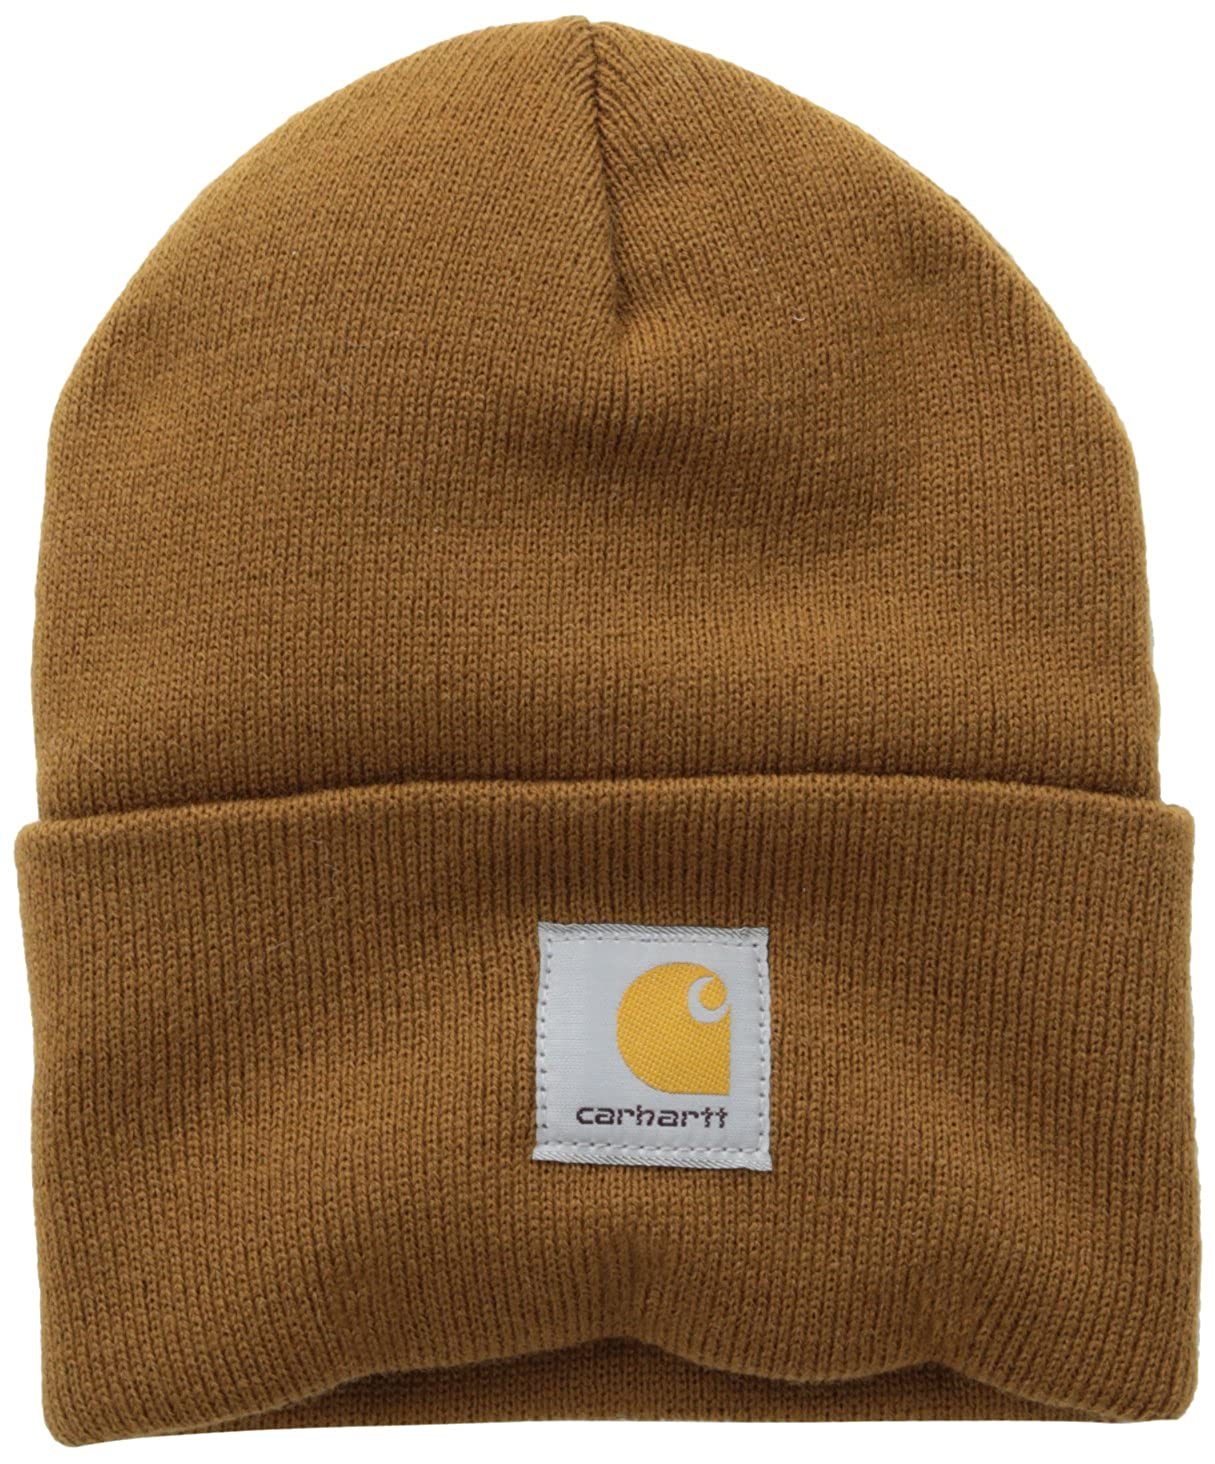 0e08aefbc5a24 Carhartt Men s Acrylic Watch Hat A18